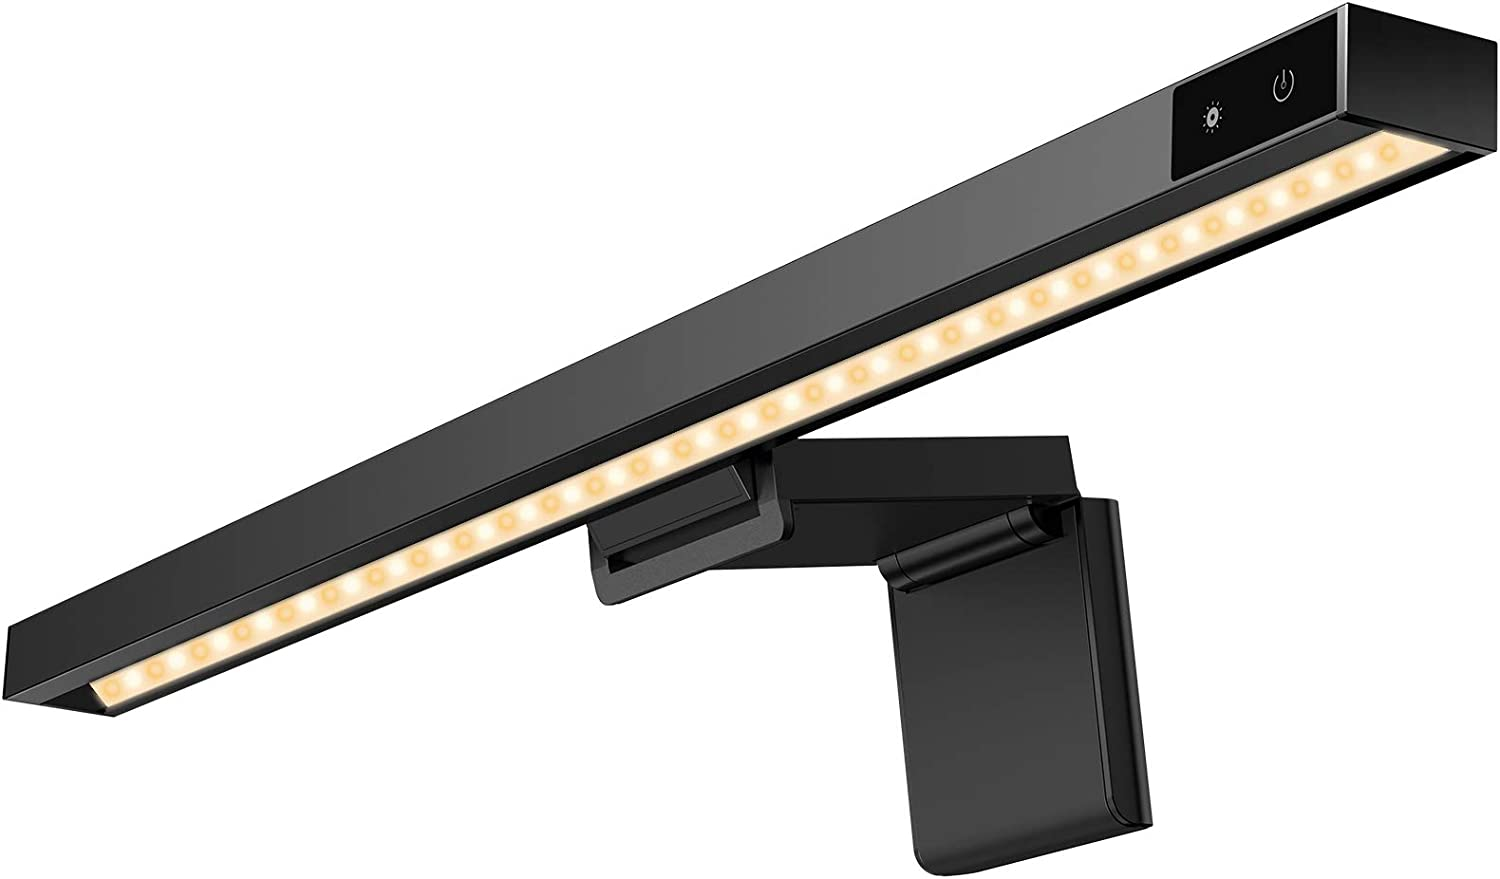 Computer Monitor Light, MJEMS Screen Light Bar e-Reading LED Task Lamp, 3 Color Modes LED Lights with Hue Adjustment Features, No Screen Glare, Matte Black USB Powered Office Lamp